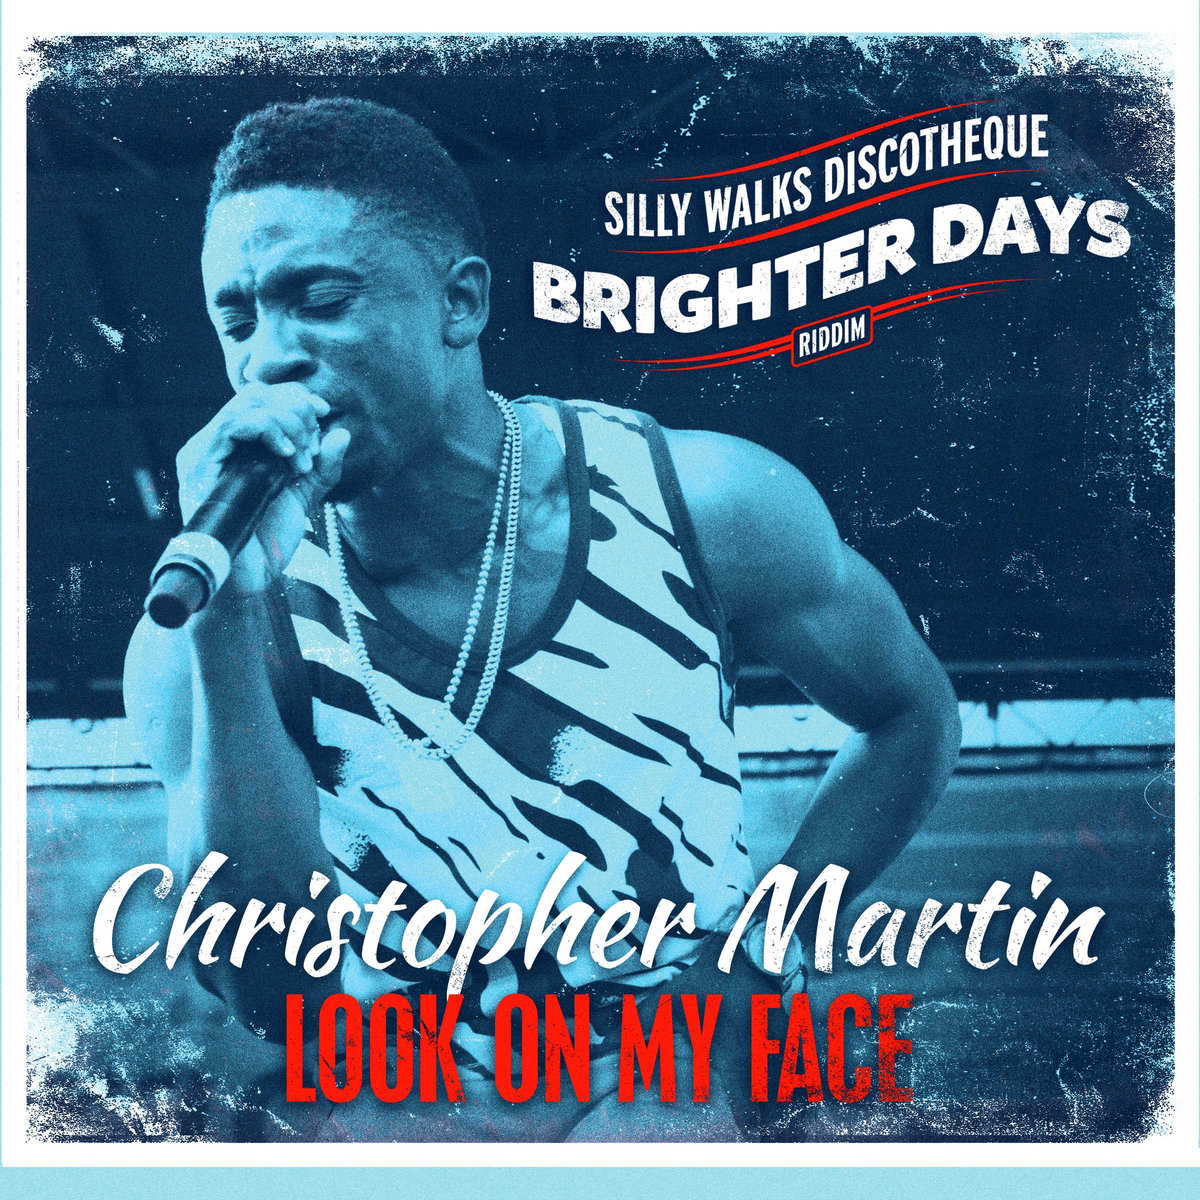 Look On My Face (Brighter Days Riddim) | Silly Walks Discotheque